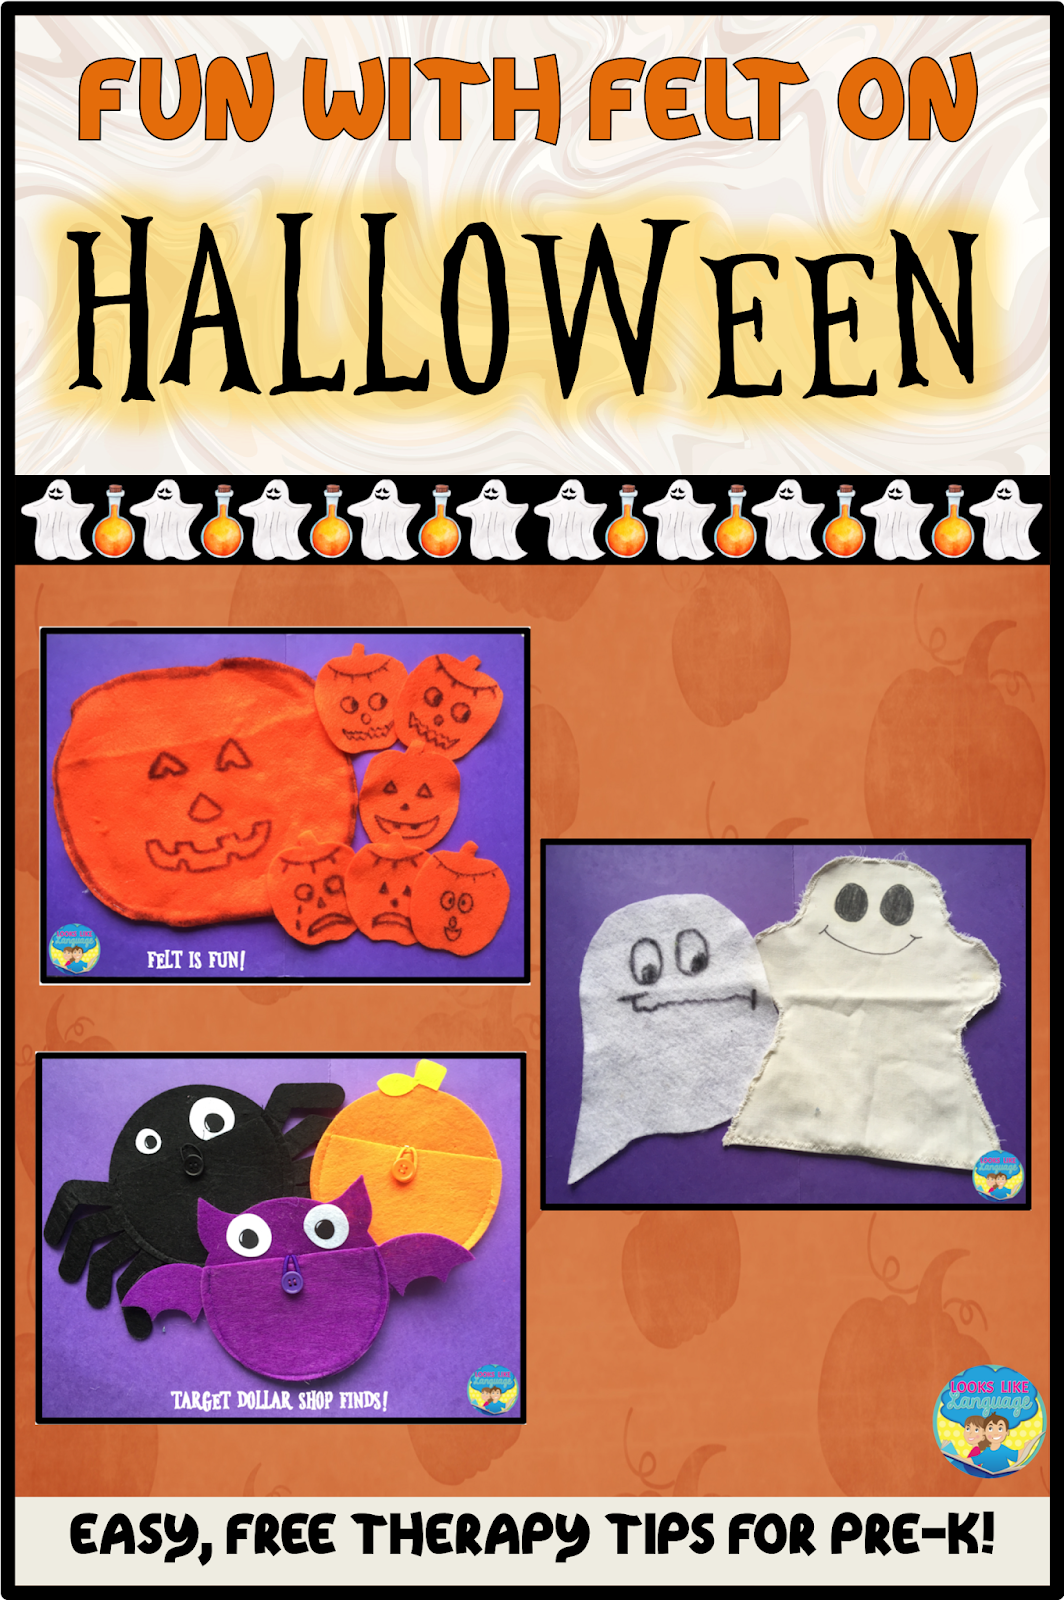 3 thrilling halloween activities | <!--can't find substitution for